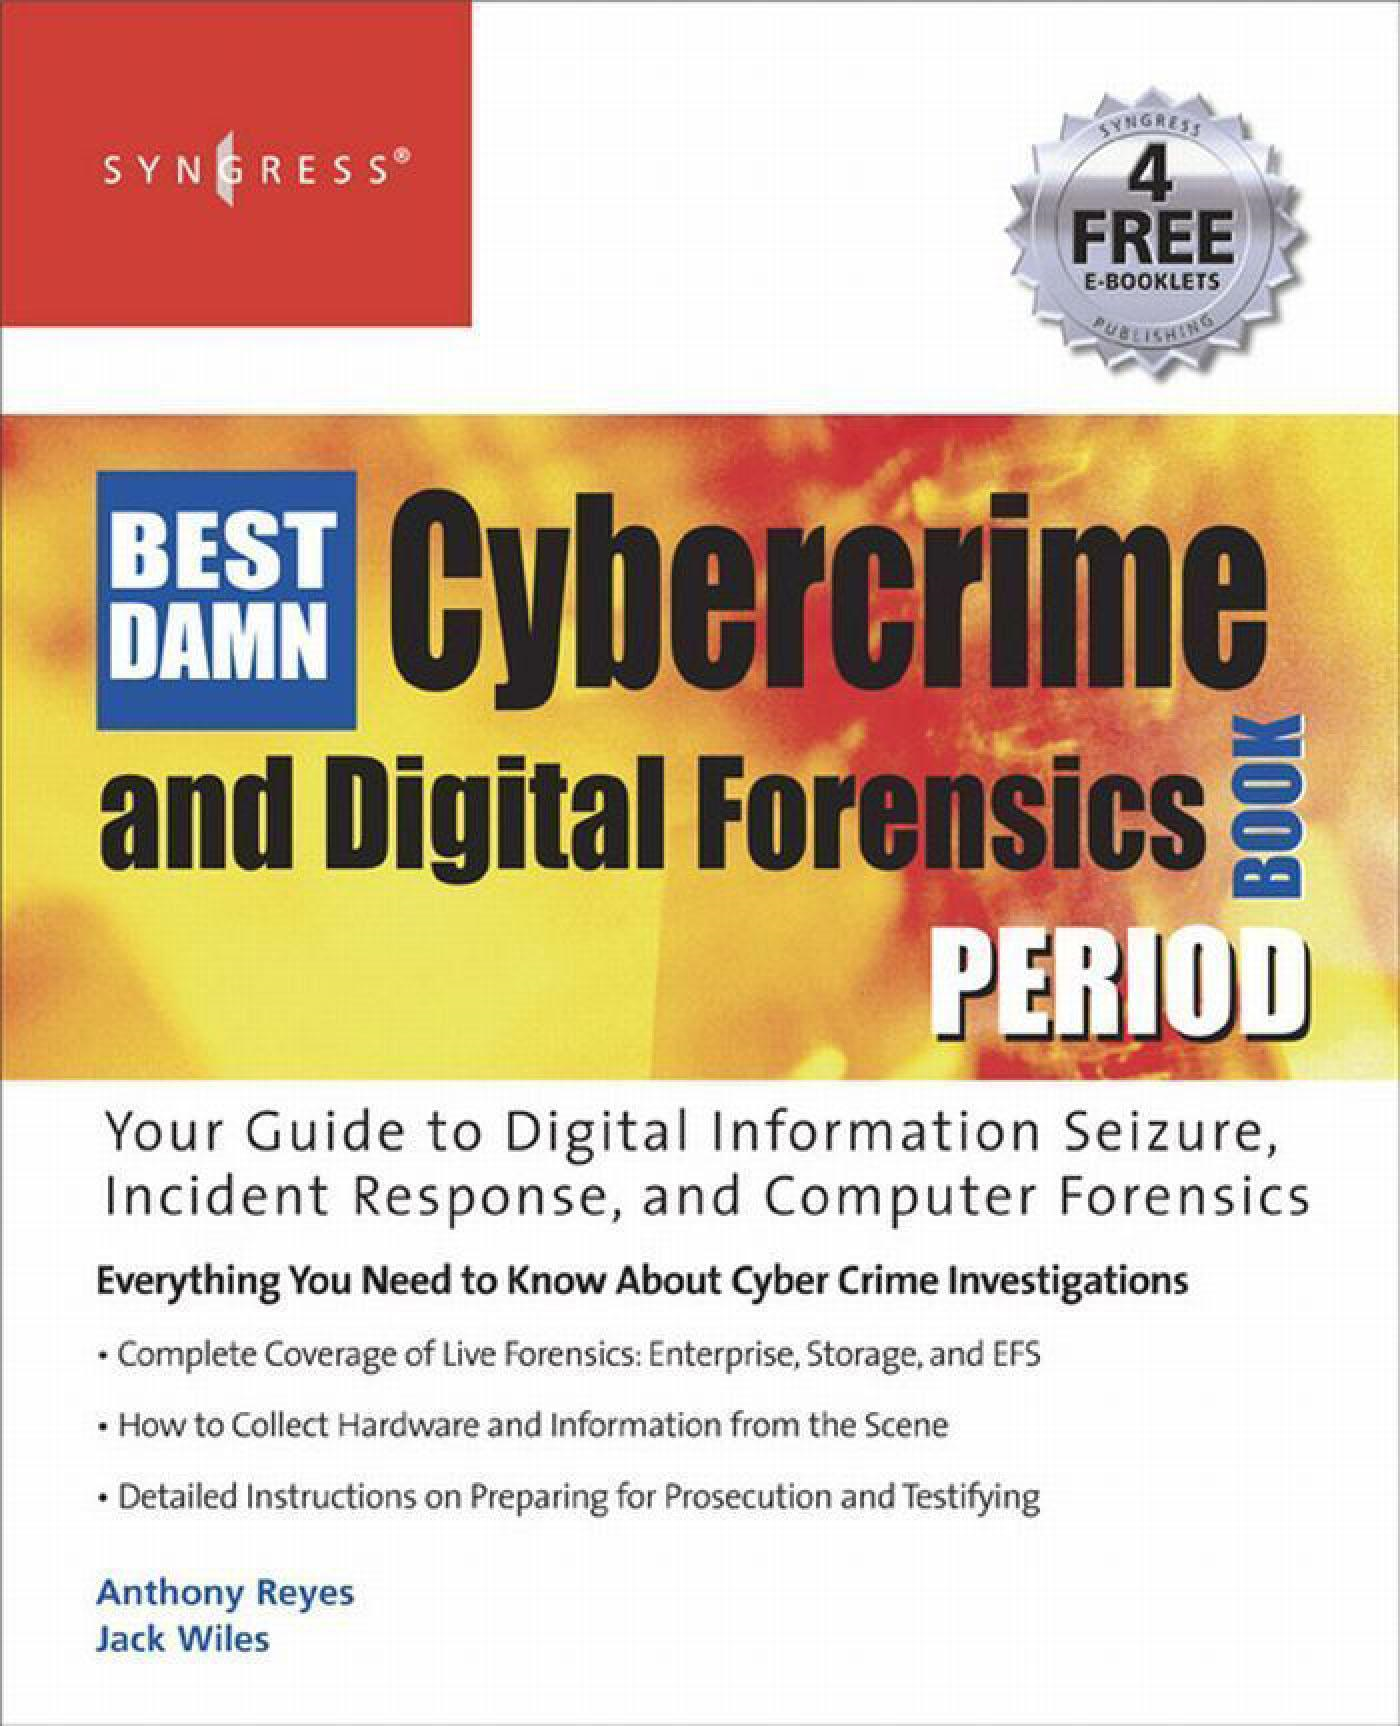 Jack Wiles - The Best Damn Cybercrime and Digital Forensics Book Period